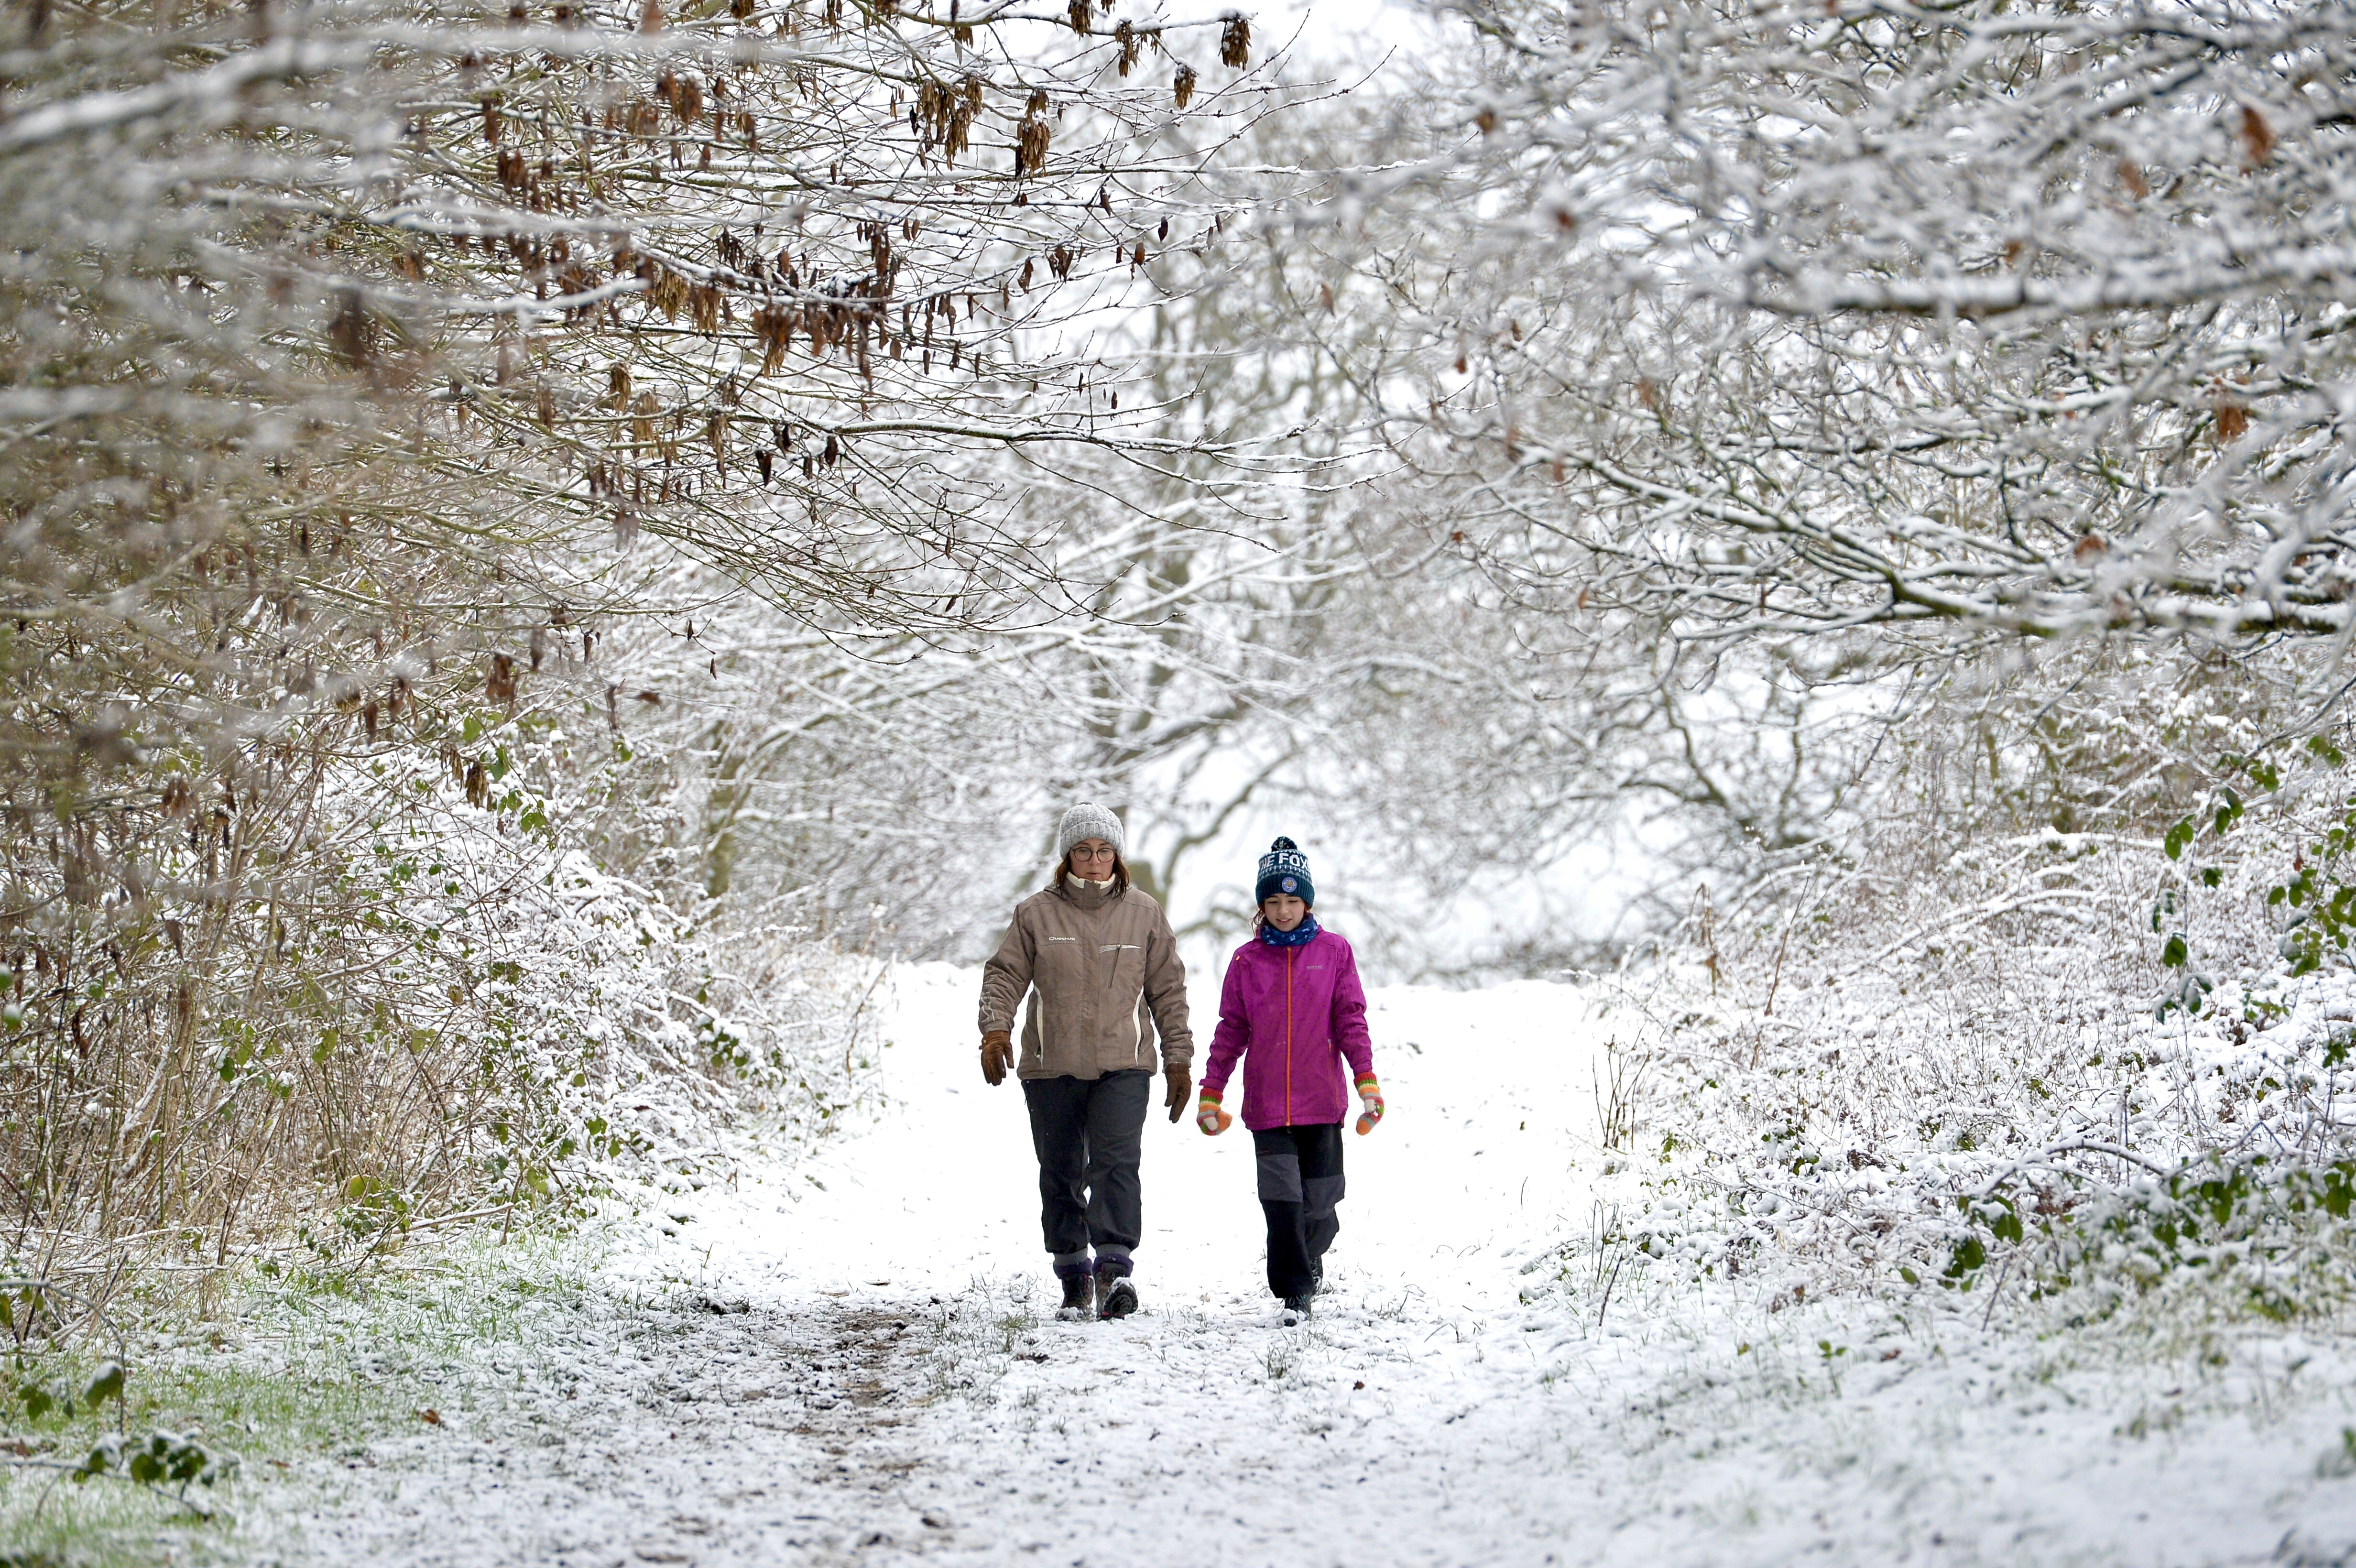 Leicester, Leicestershire, UK 29th Dec 2020. Uk Weather. Snow. Fun in the snow as Bradgate Park in Leicestershire is covered in a blanket of snow. Alex Hannam/Alamy Live News